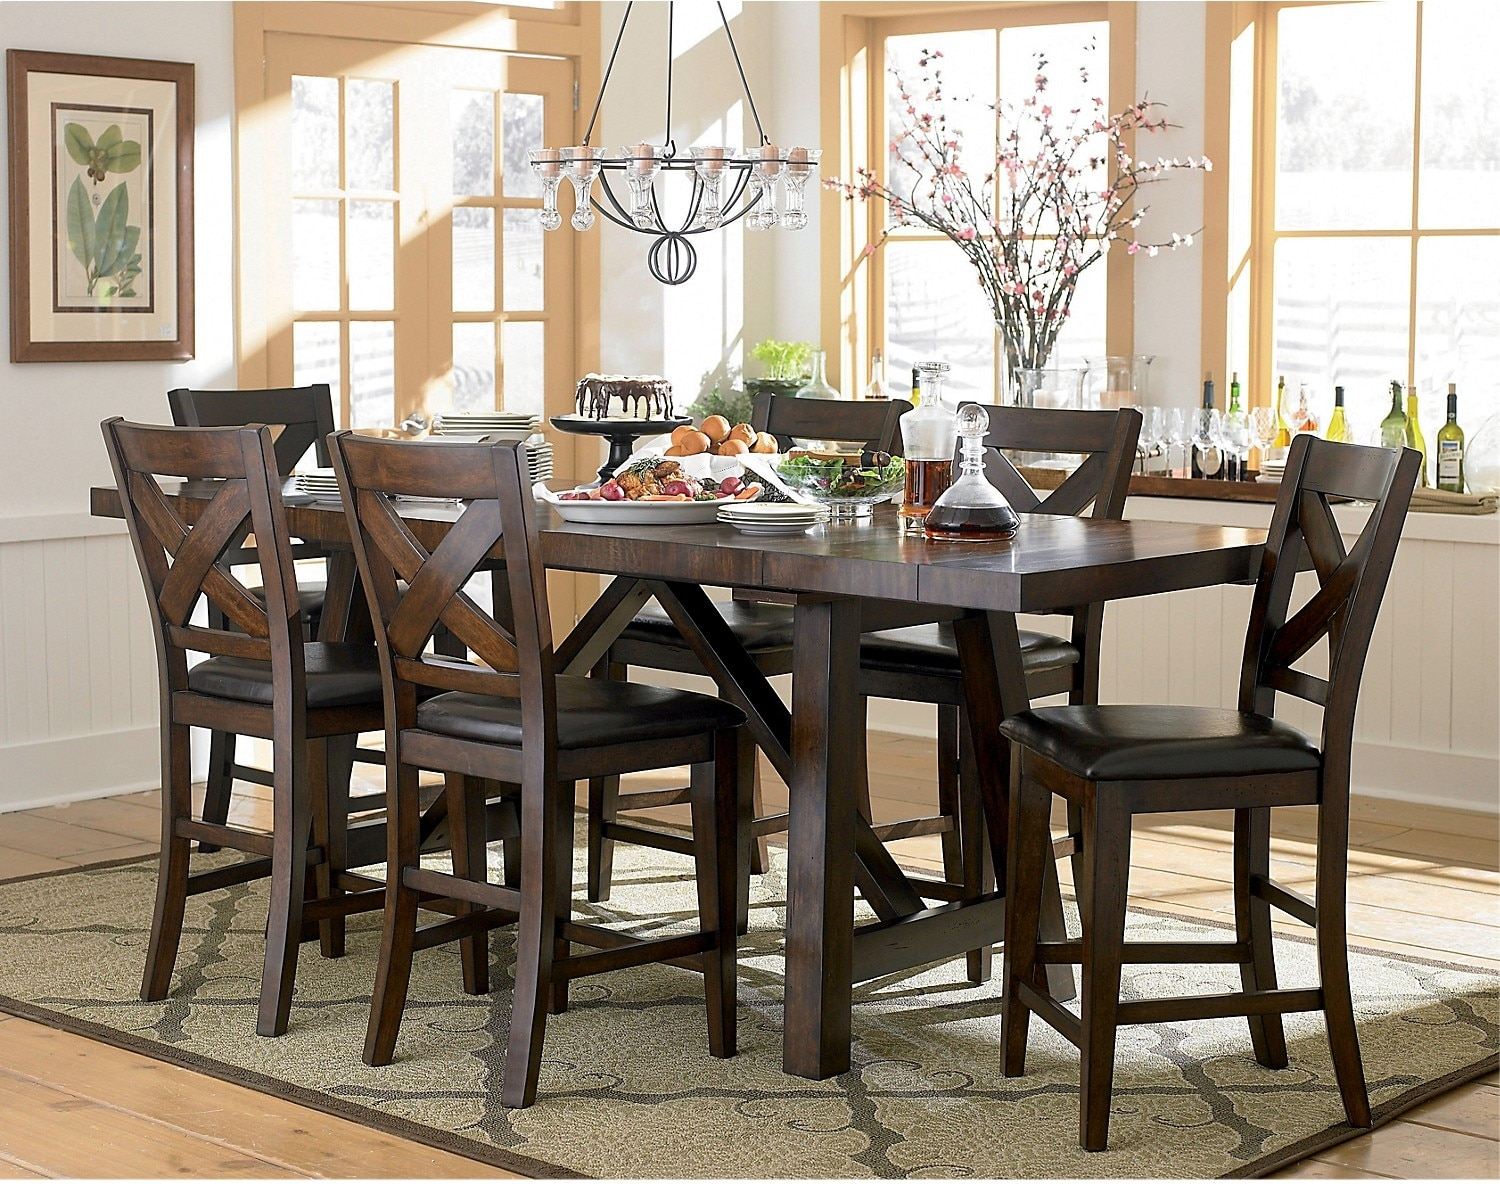 Dining Room Furniture - Adara 8-Piece Counter Height Dining Package